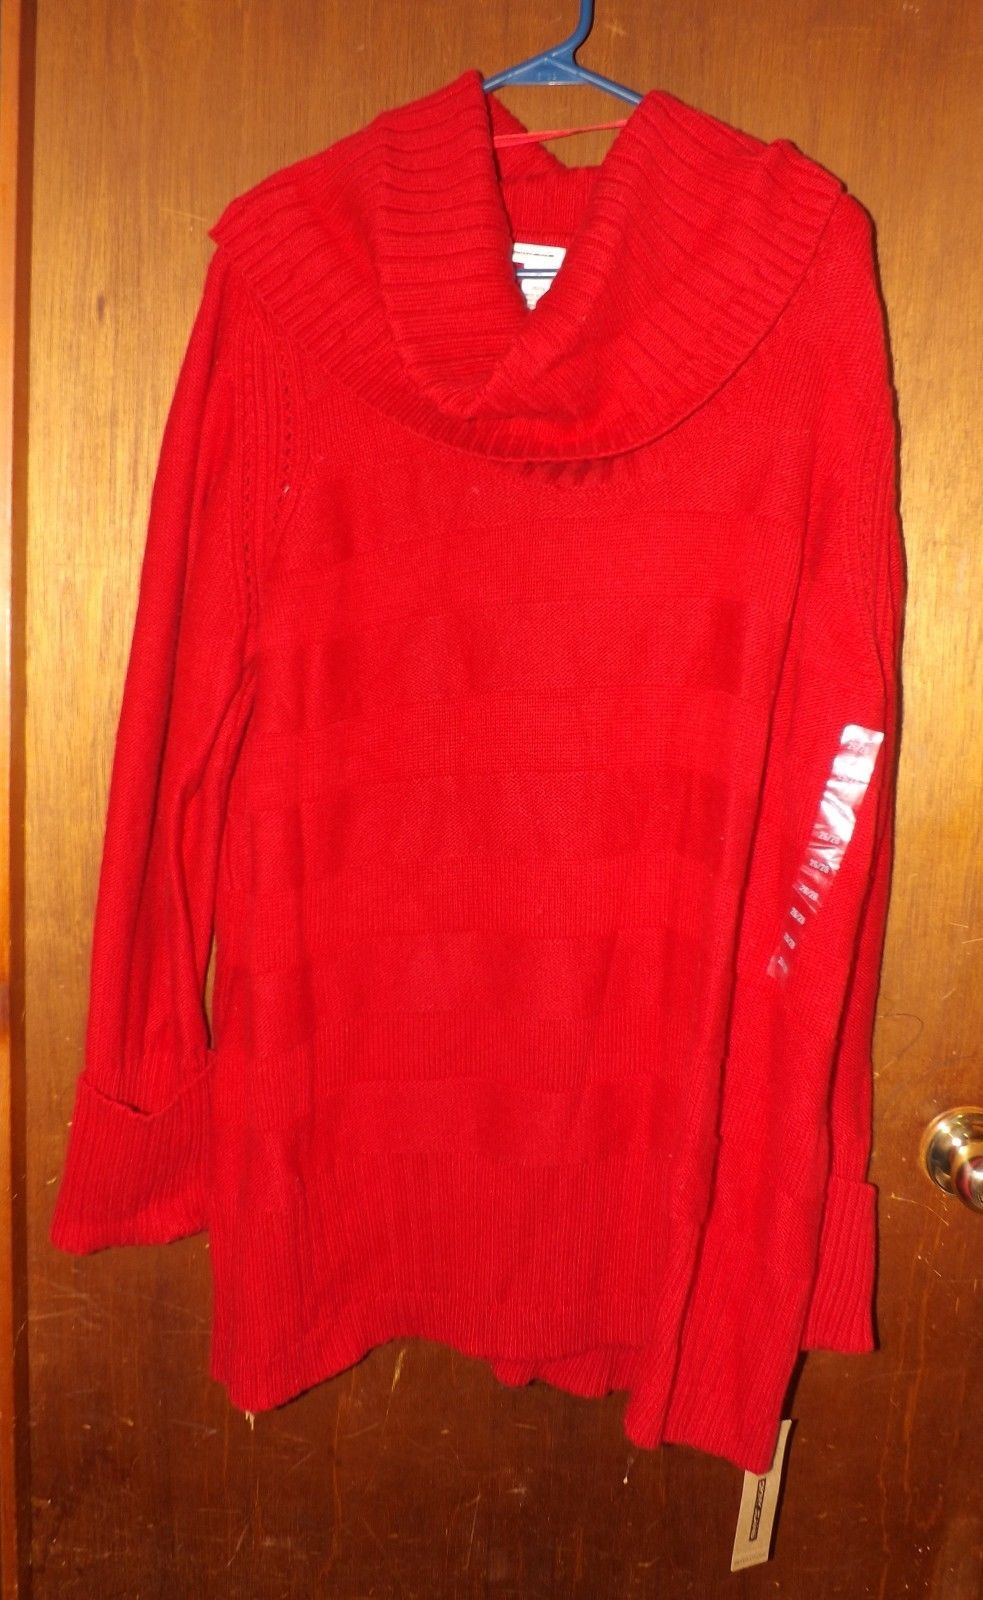 Primary image for DKNY Jeans Red Cowl Neck Long Sleeve Sweater - Size 26/28